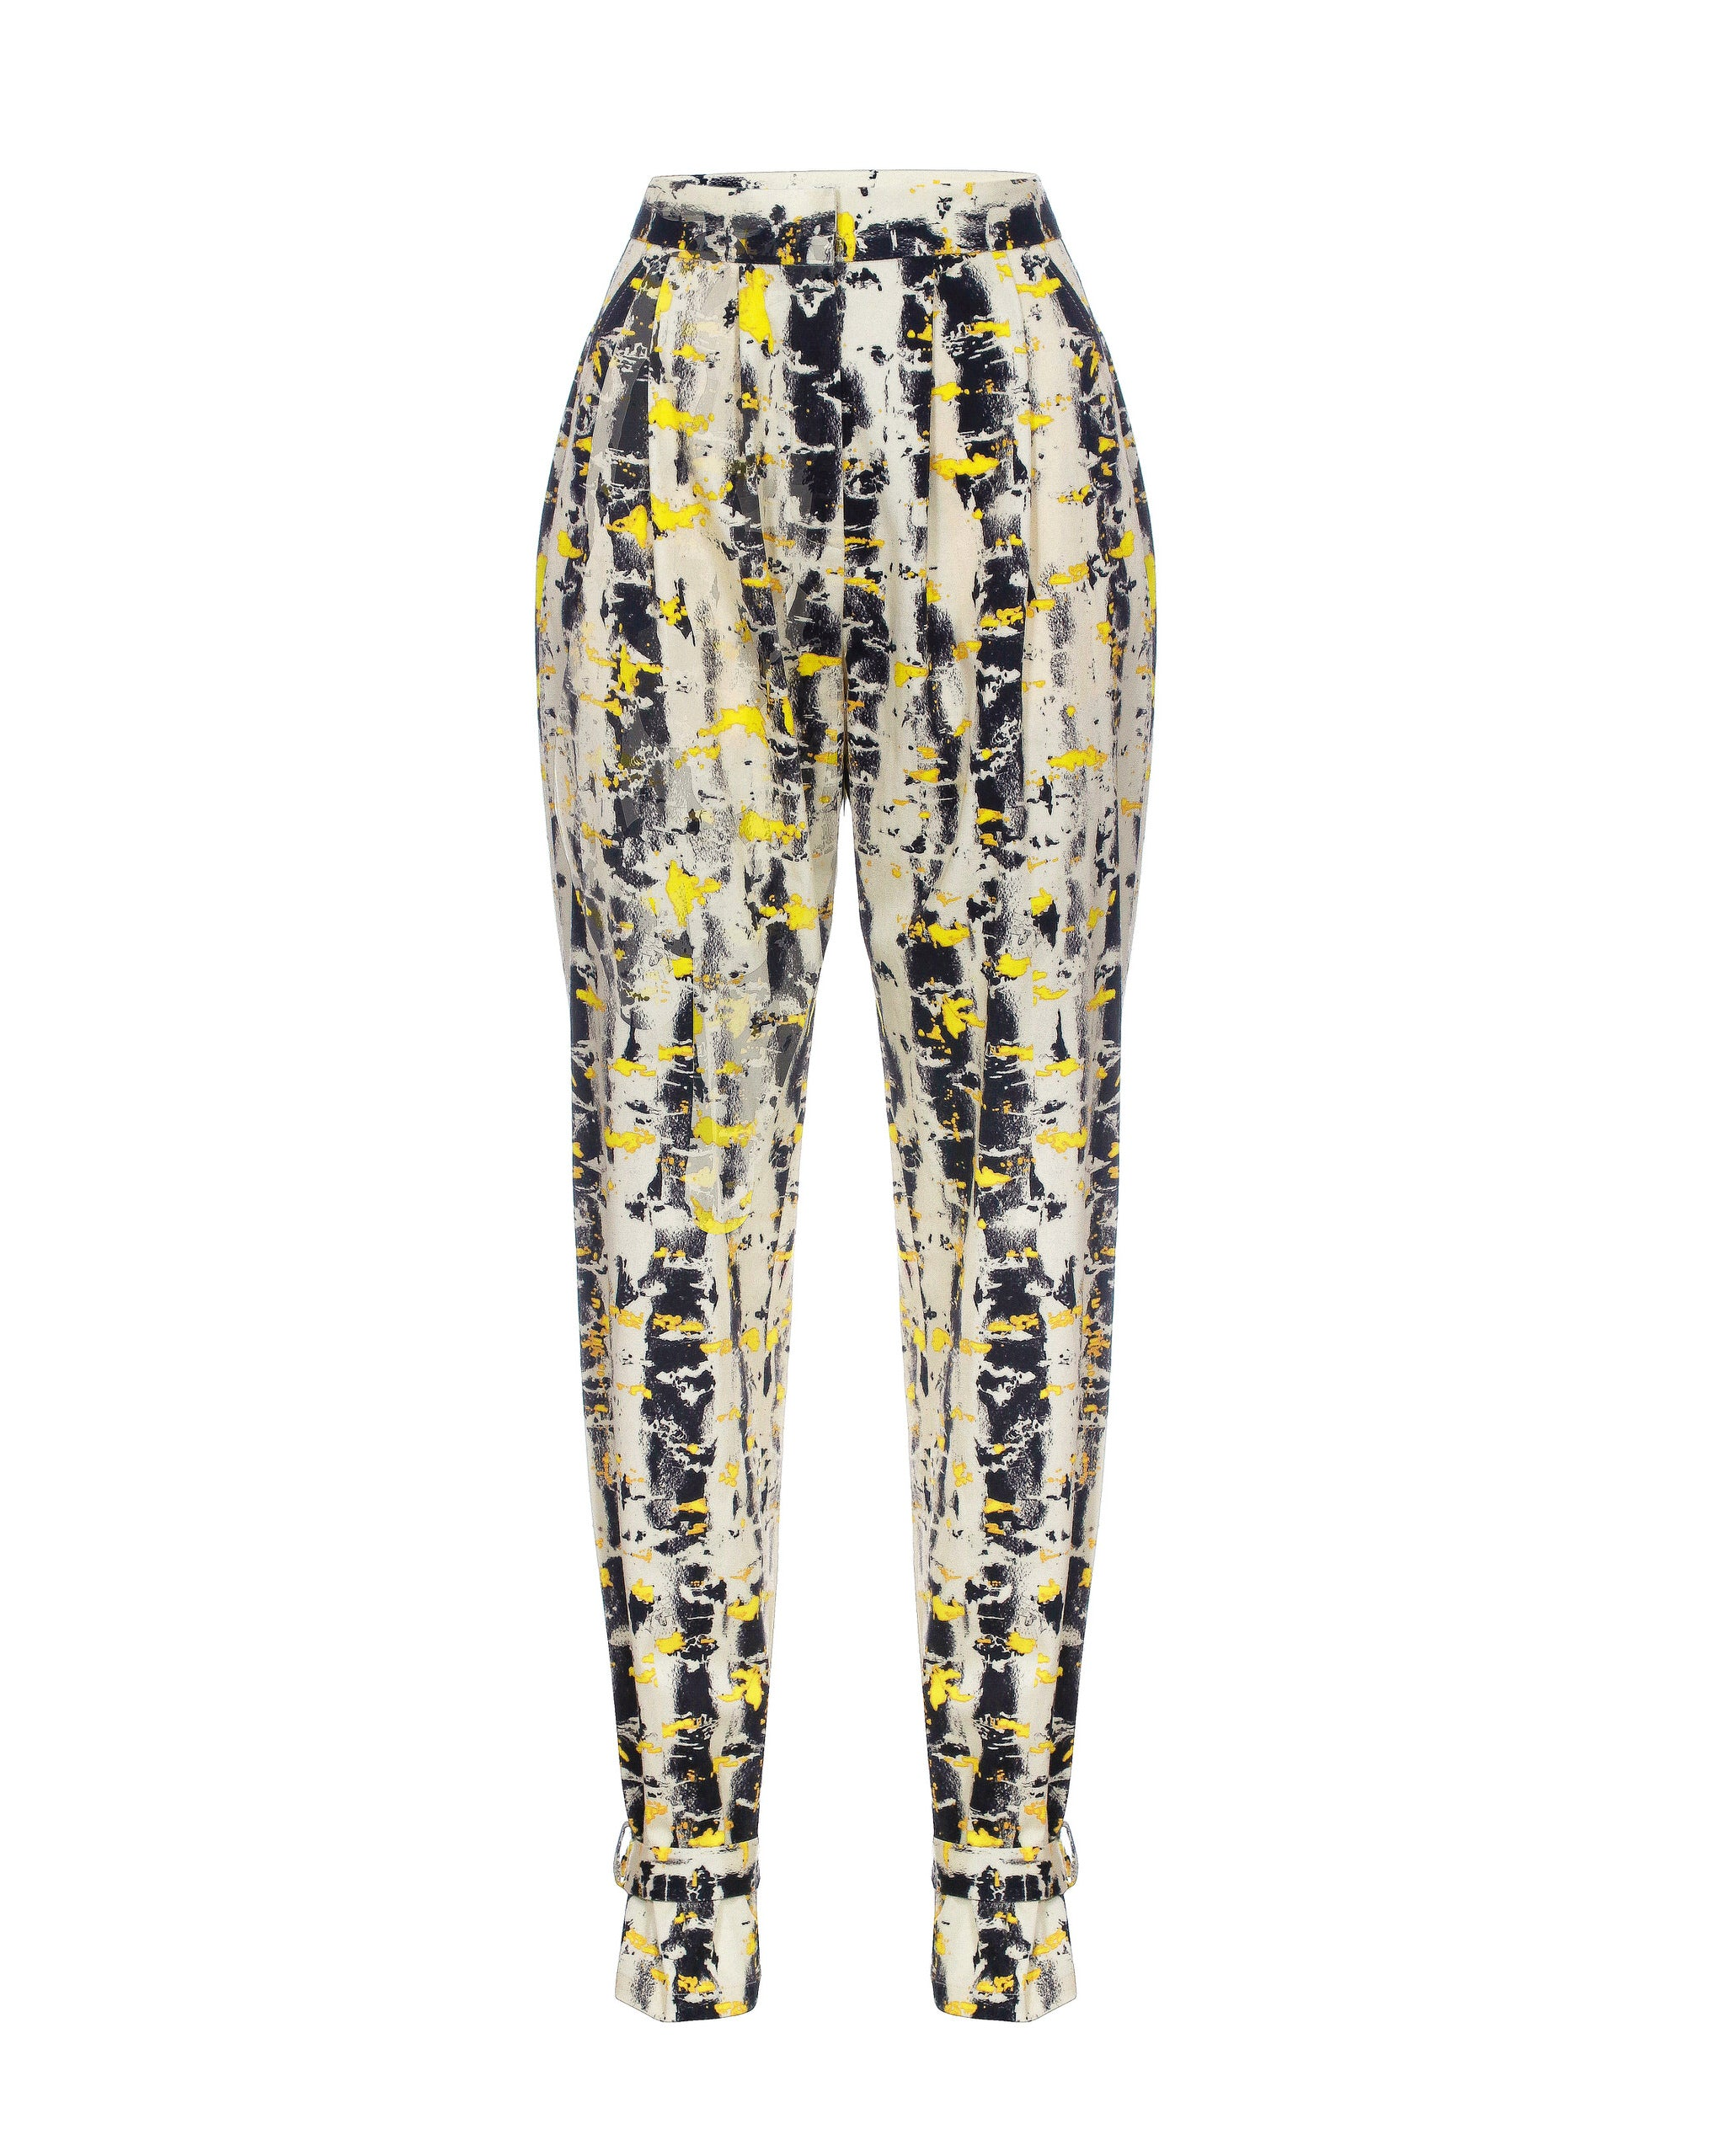 Birch bark print pants